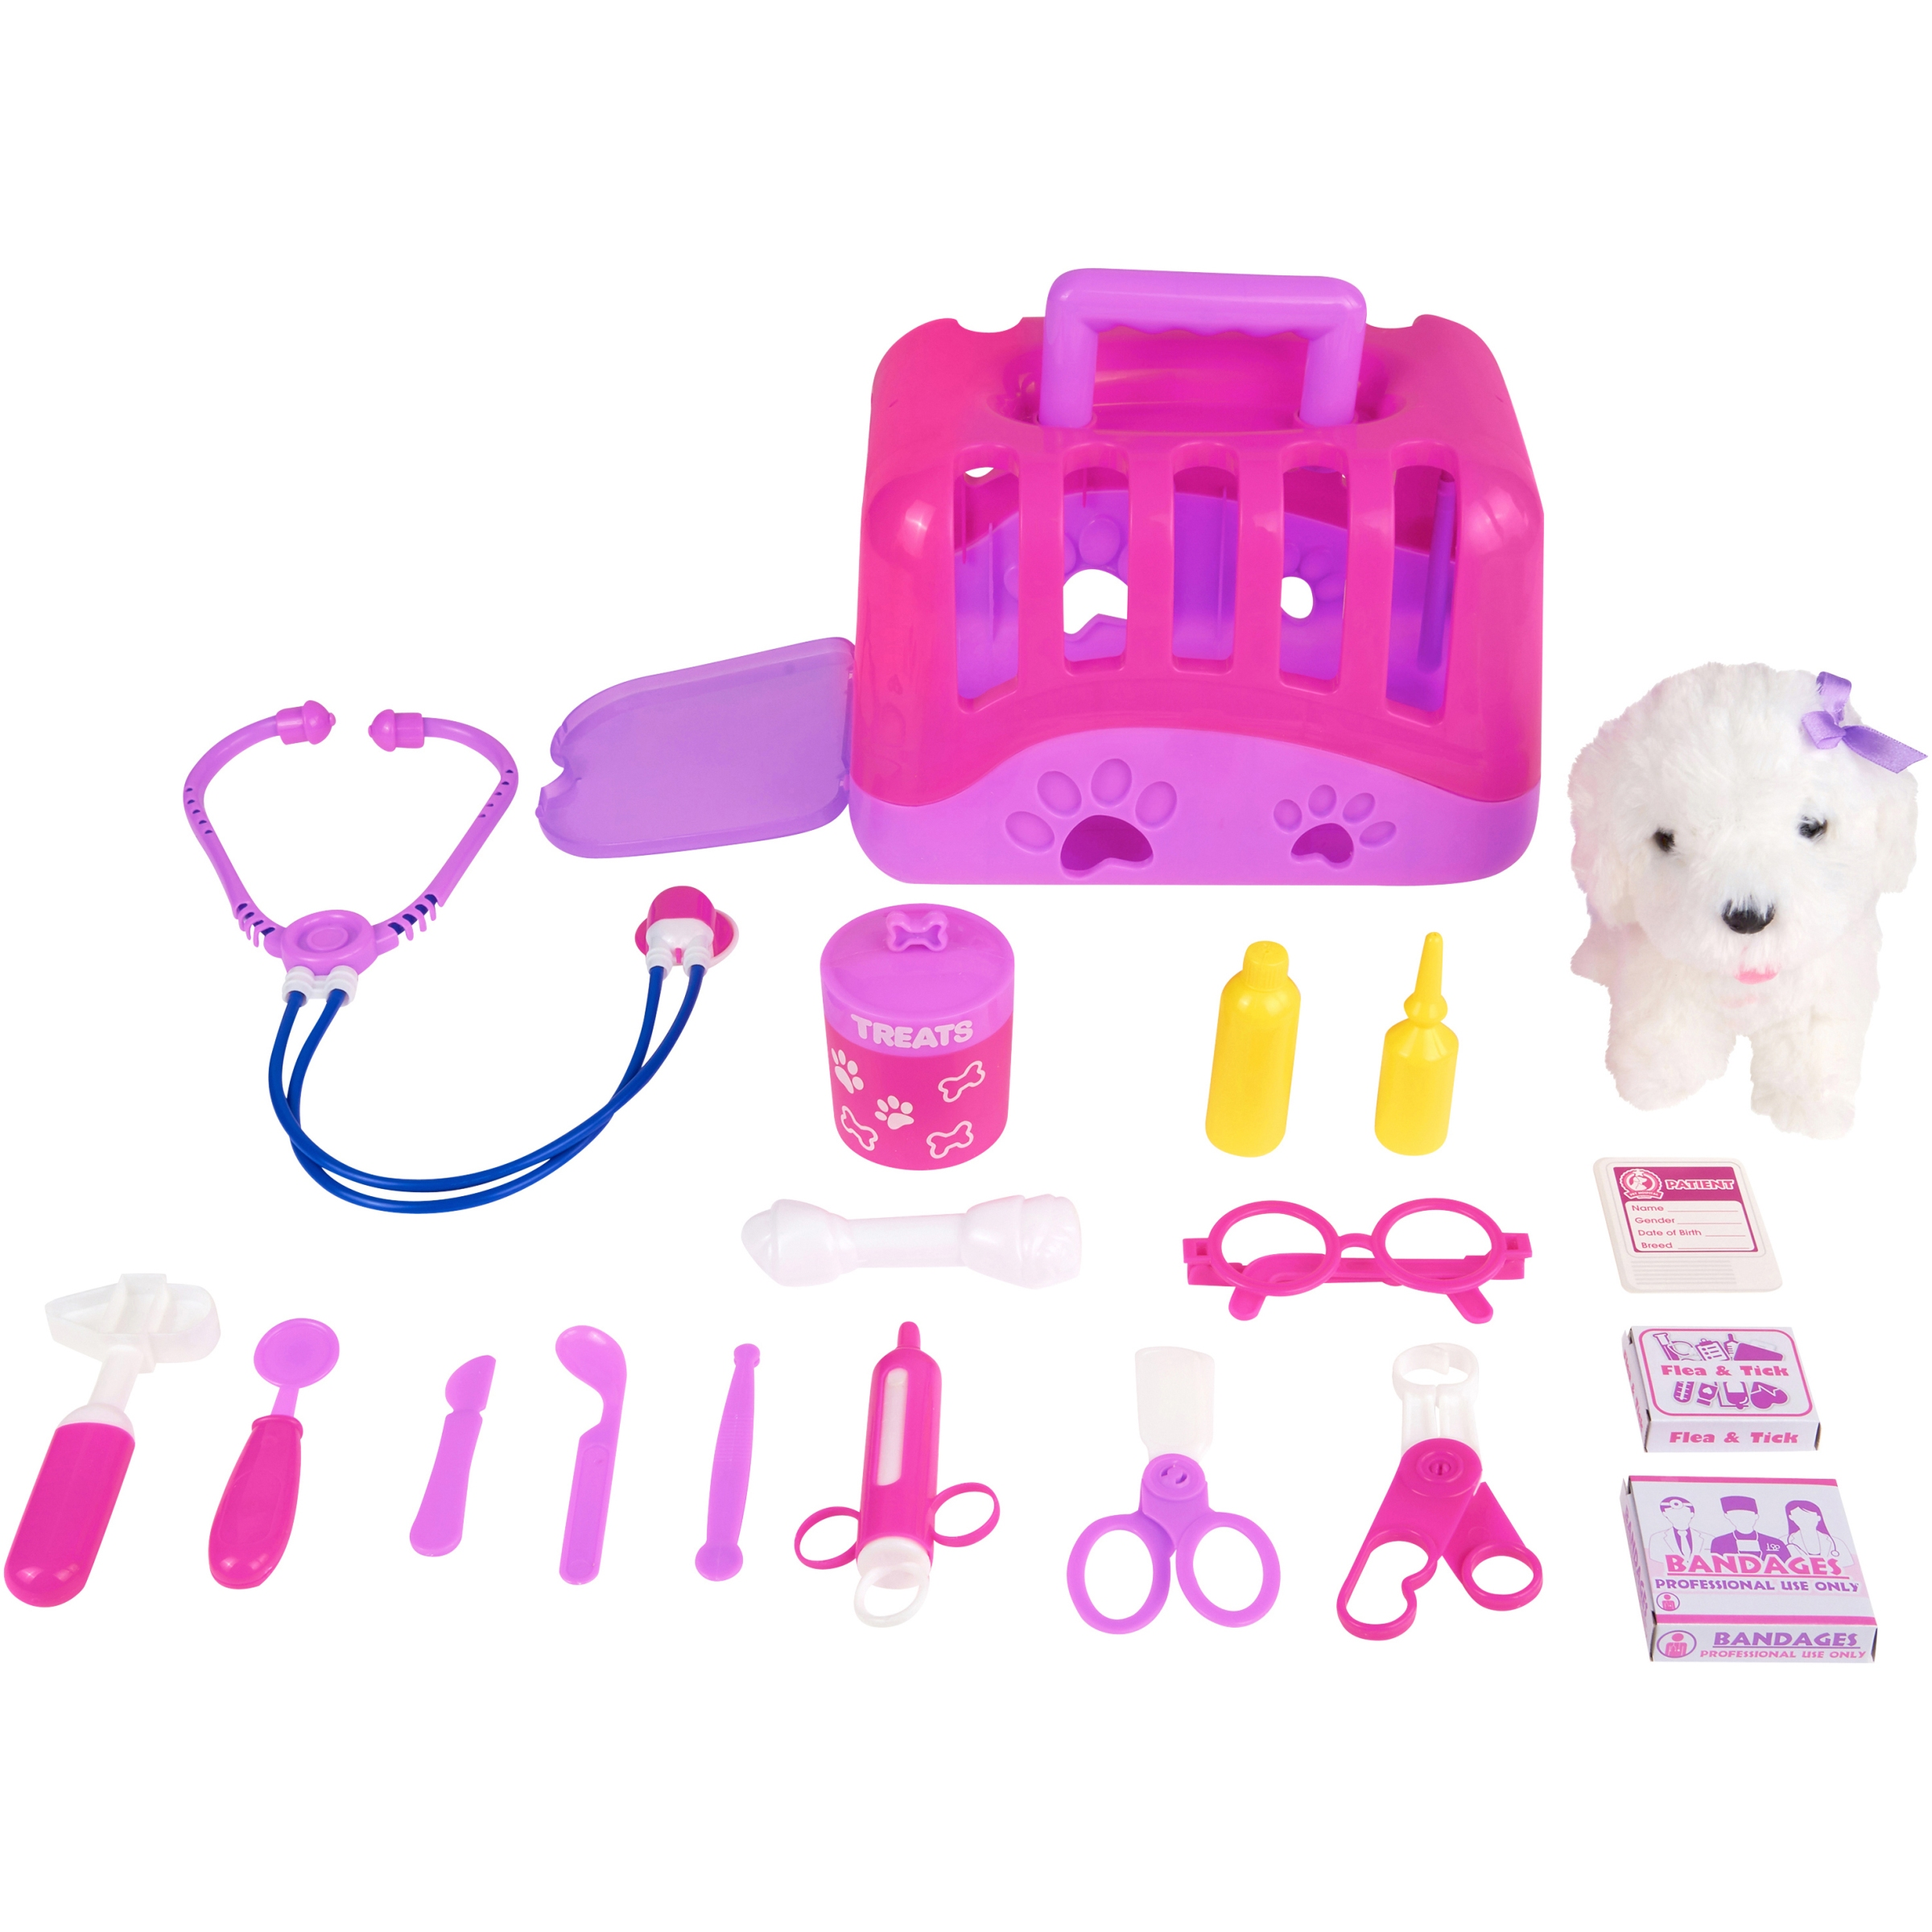 Kid Connection 20-Piece Veterinary Play Set, Designed for Ages 3 and Up